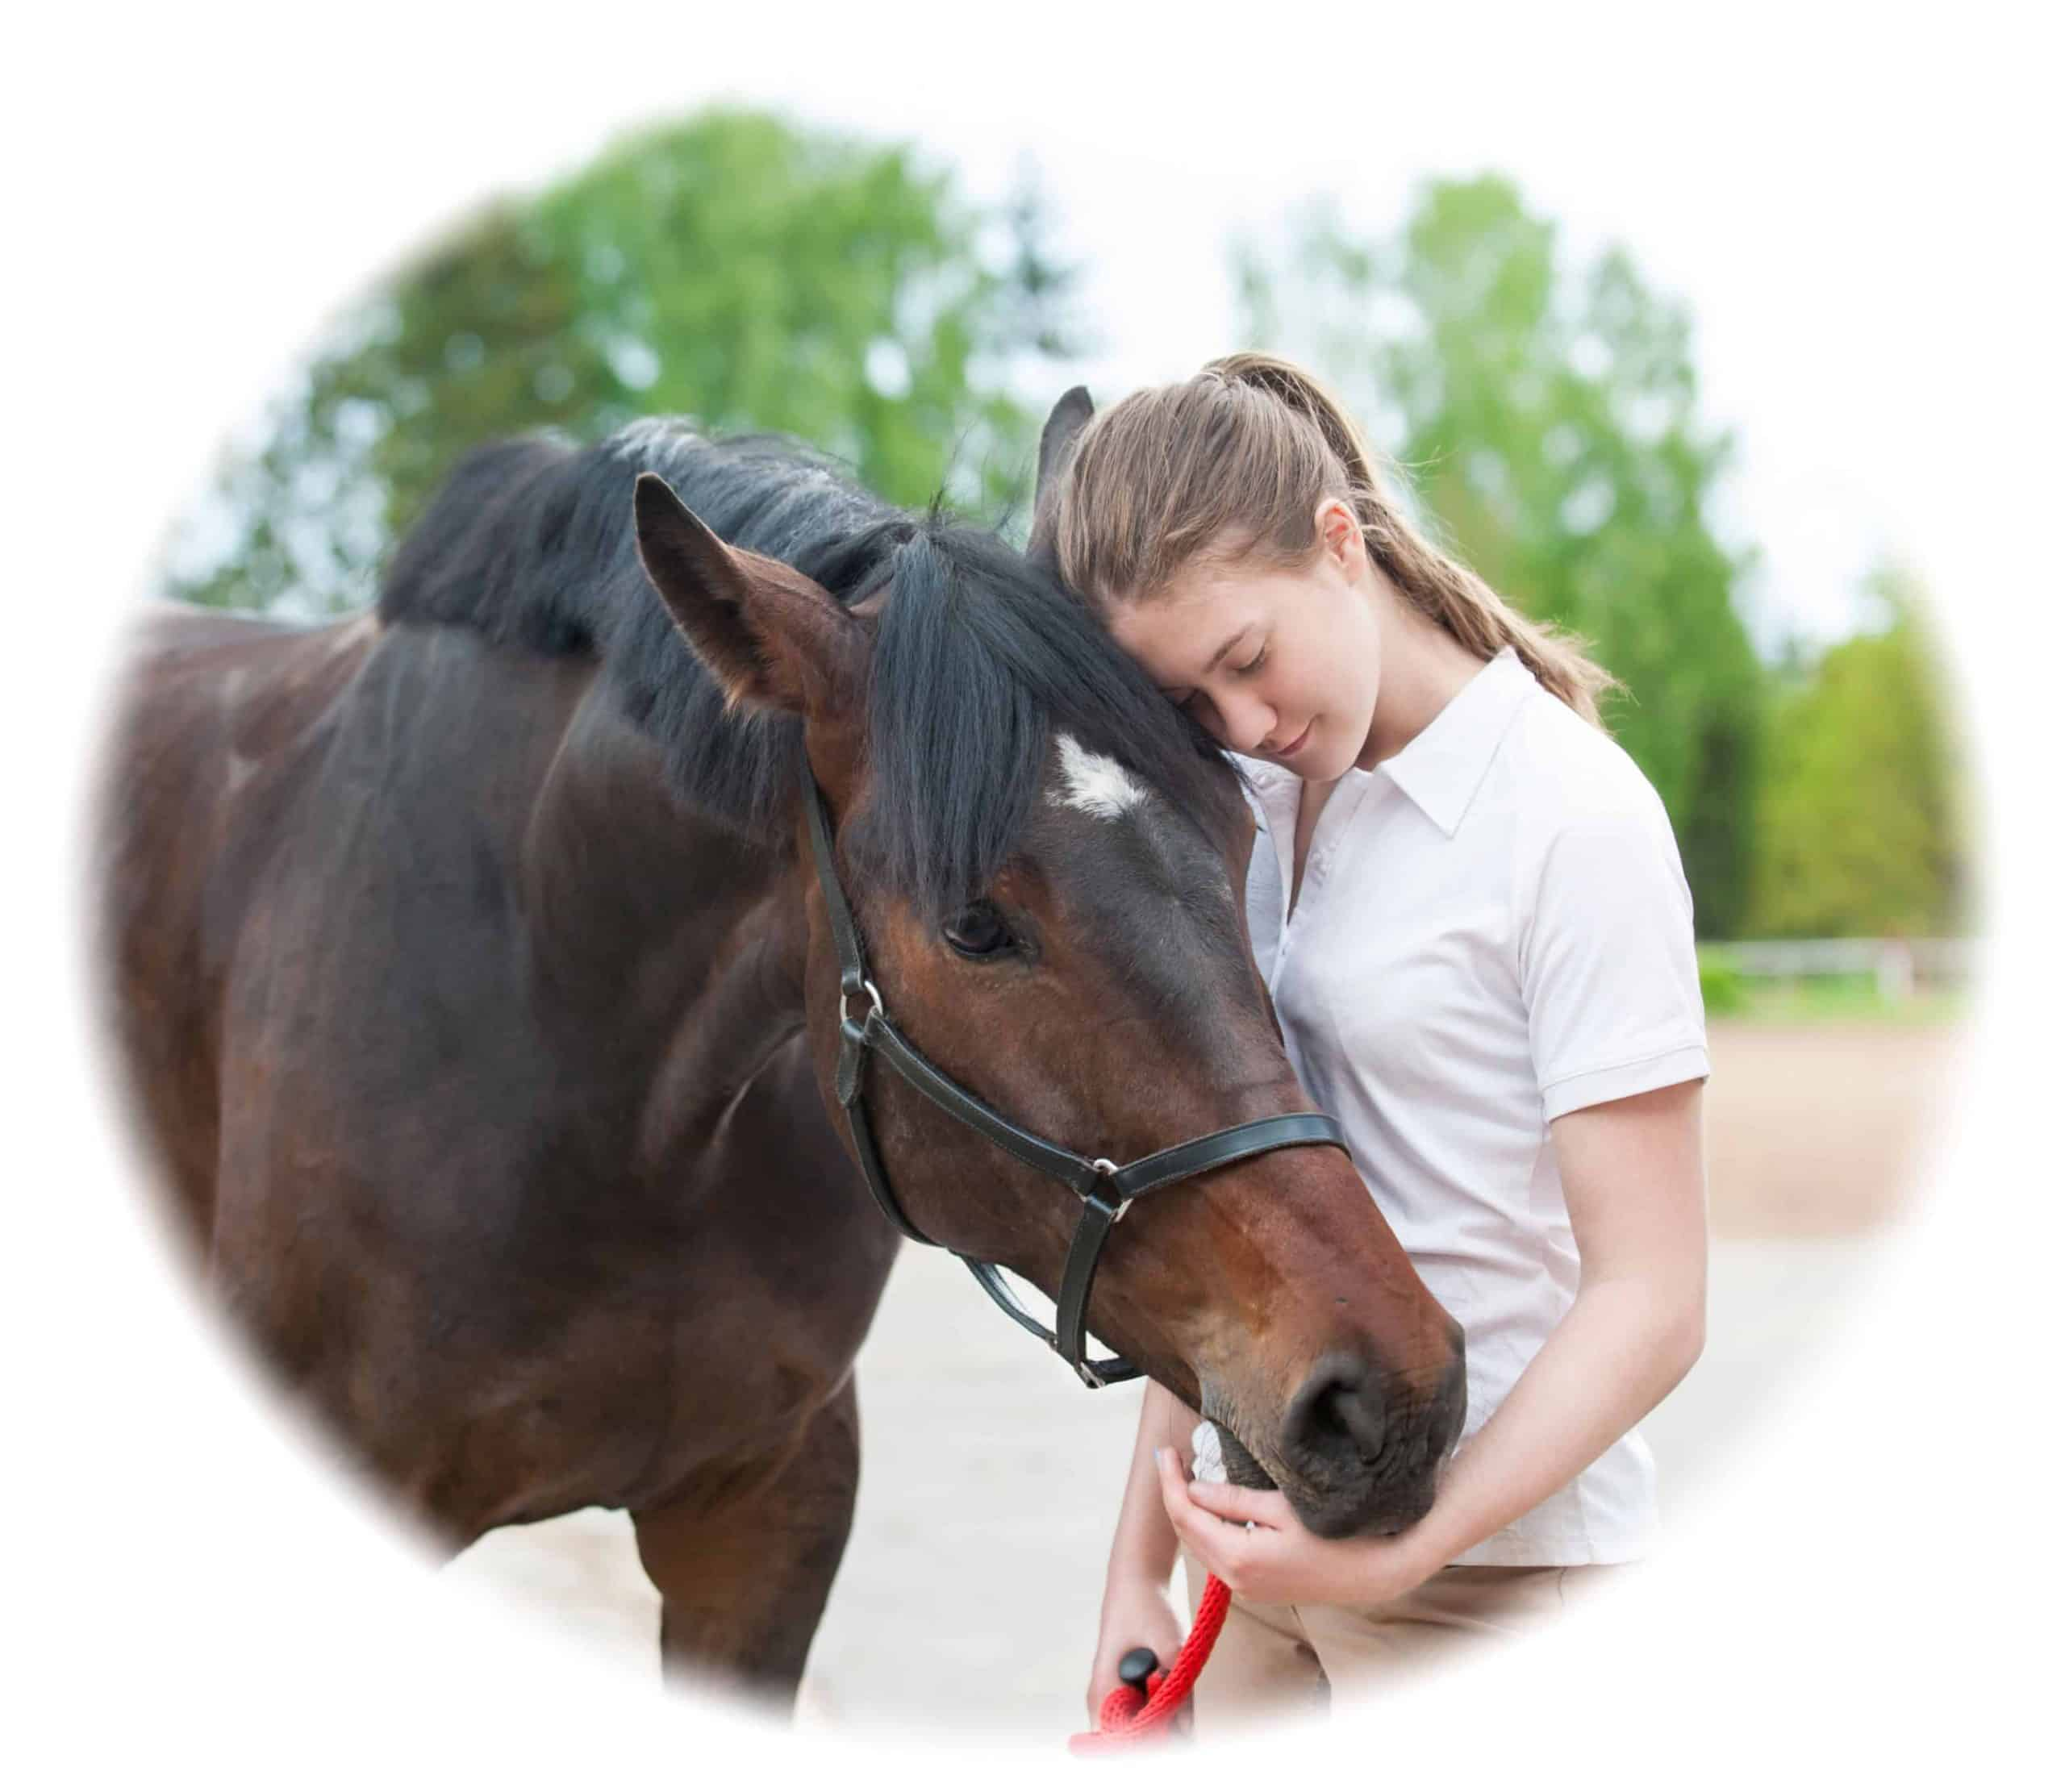 Learn best equine skills to prepare you for a career working with animals